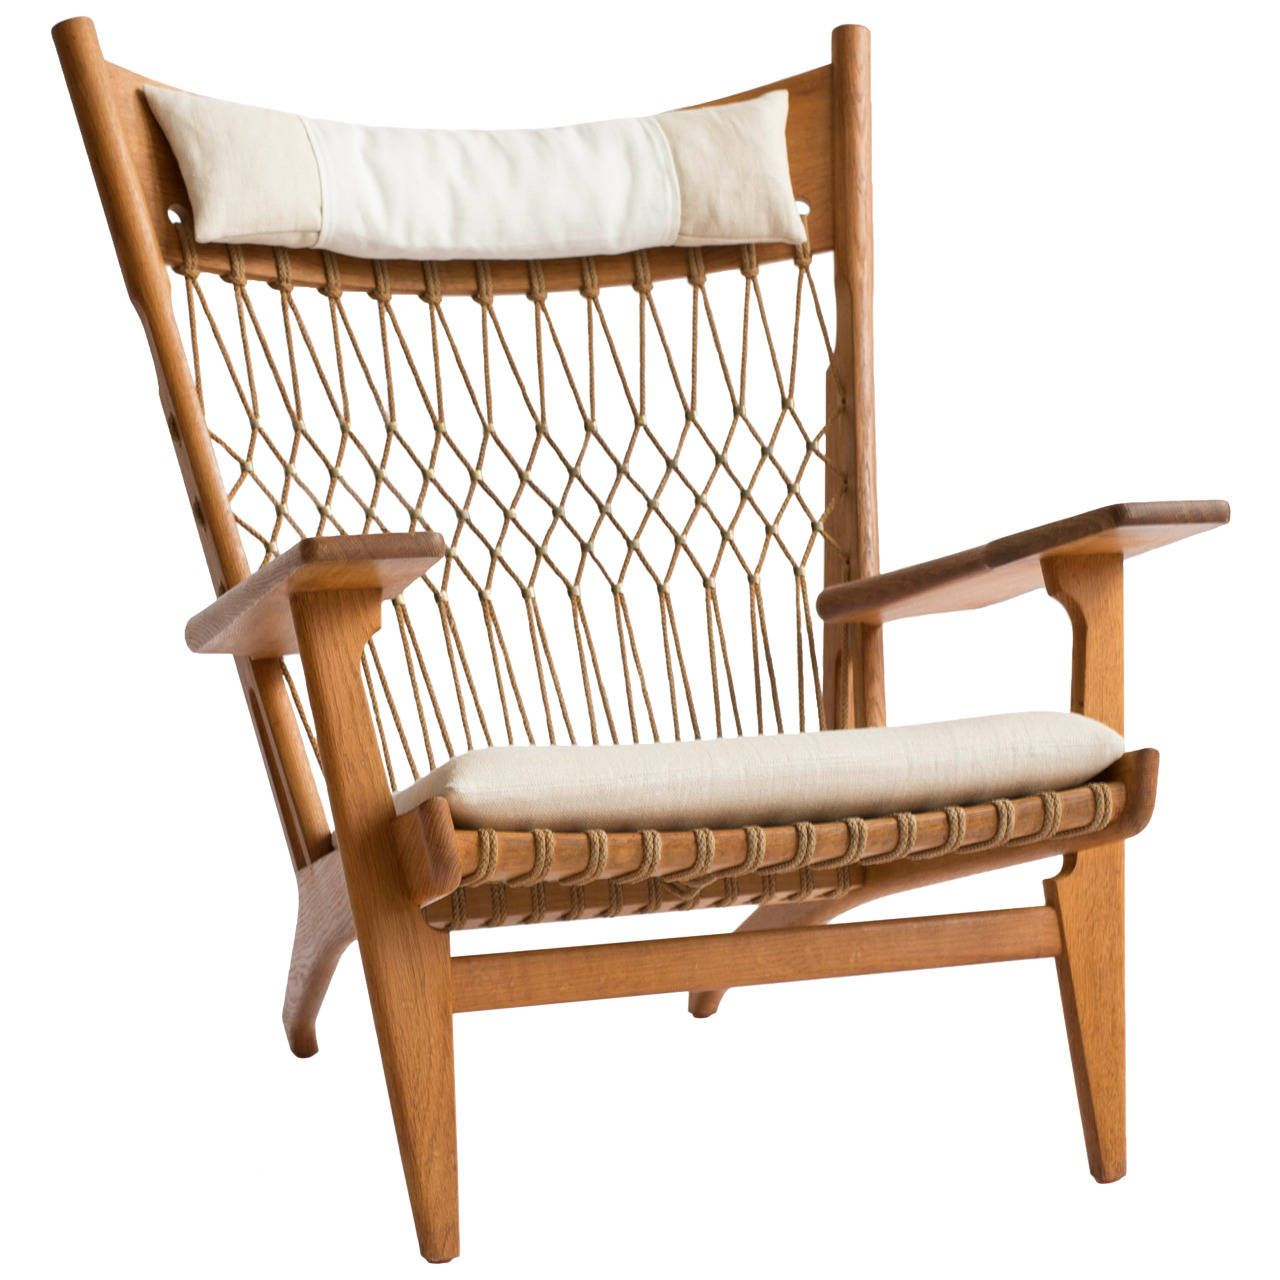 Antique easy chair - Hans J Wegner Jh 719 Armchair By Johannes Hansen From A Unique Collection